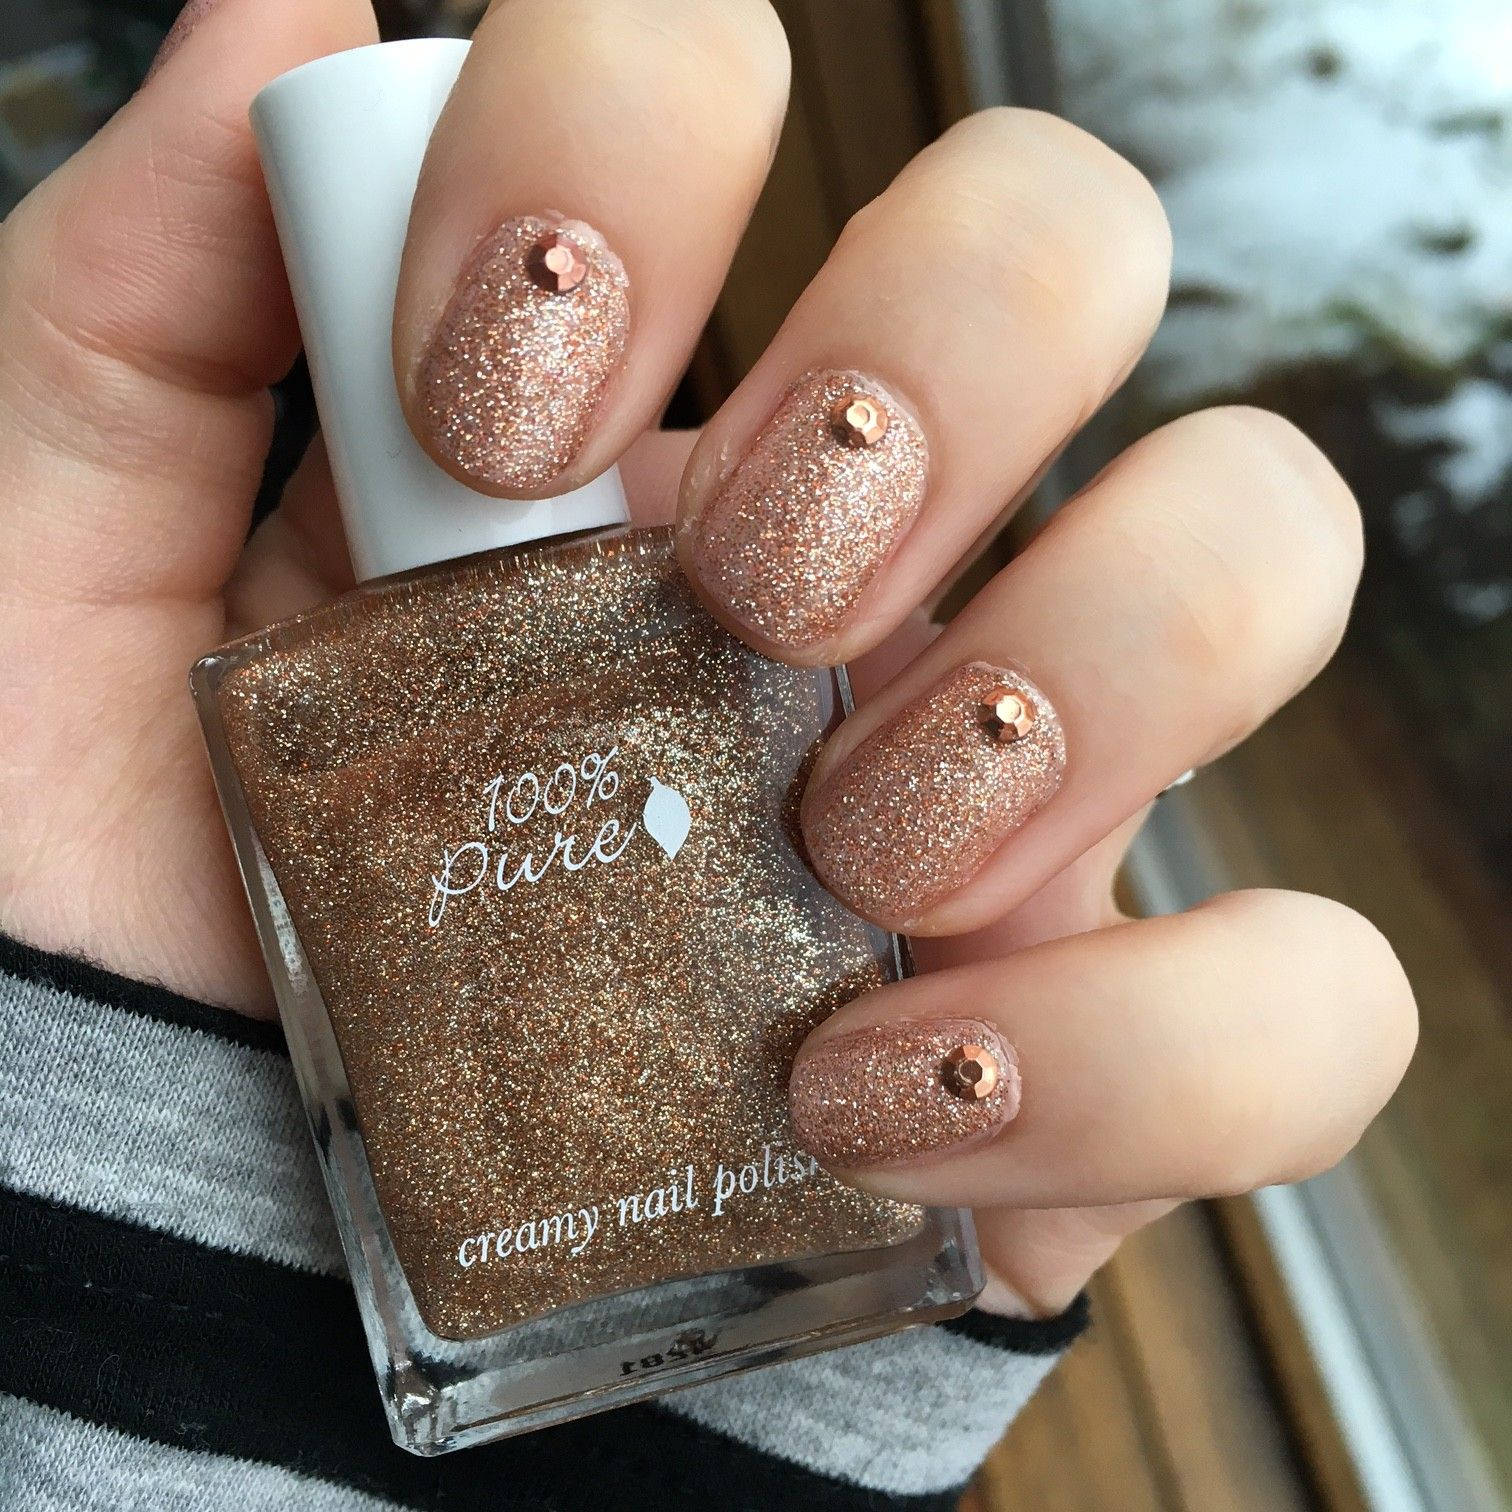 Fine Glitter Shellac Nail Polish Thin Clear Acrylic Nail Polish Square Cute Toe Nail Art Designs Kiss Nail Art Designs Youthful Thermal Color Changing Nail Polish BrownKilling Nail Fungus 100 Percent Pure Sugar Nail Polish | 100 Percent Pure | Pinterest ..